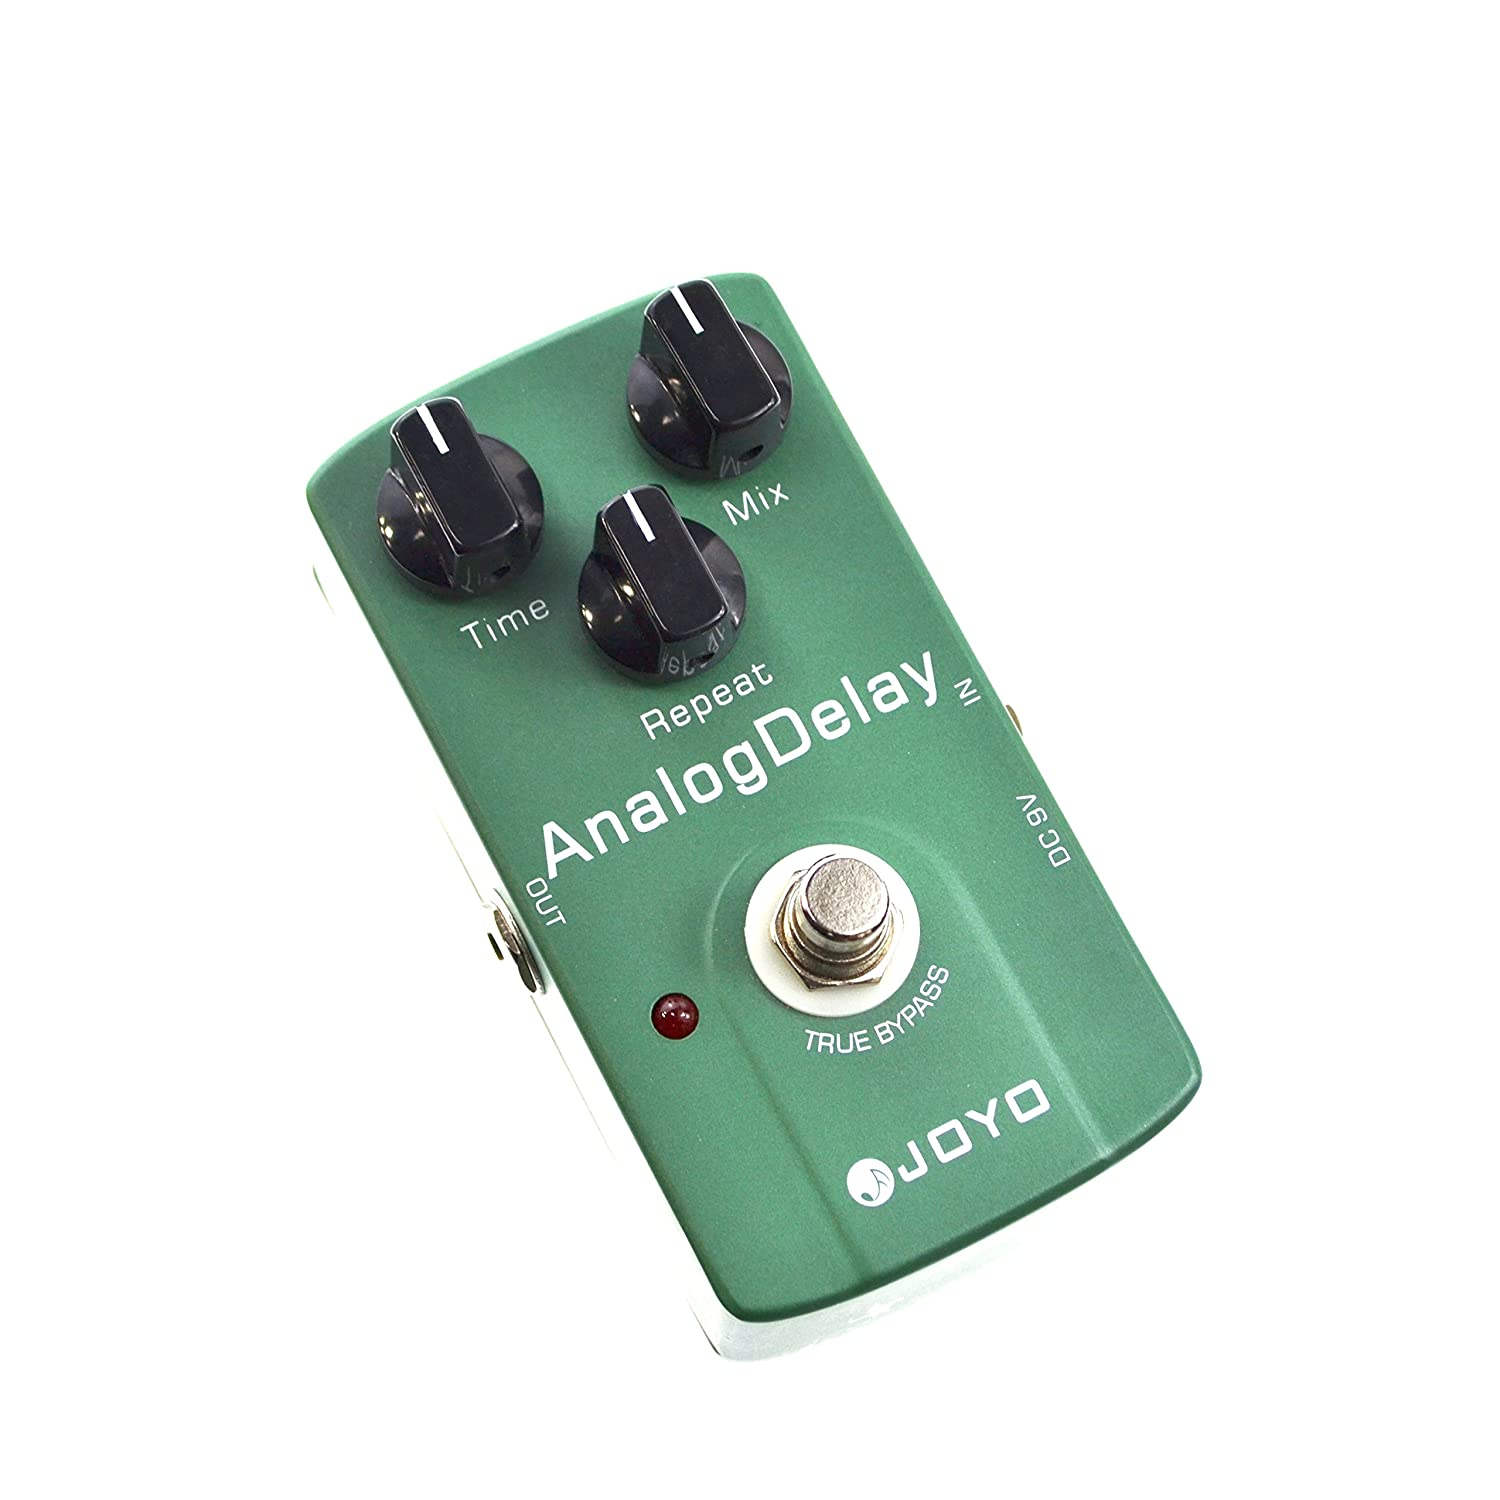 JOYO JF-33 Analog Delay Pedal mit der Funktion Delay-Effekt